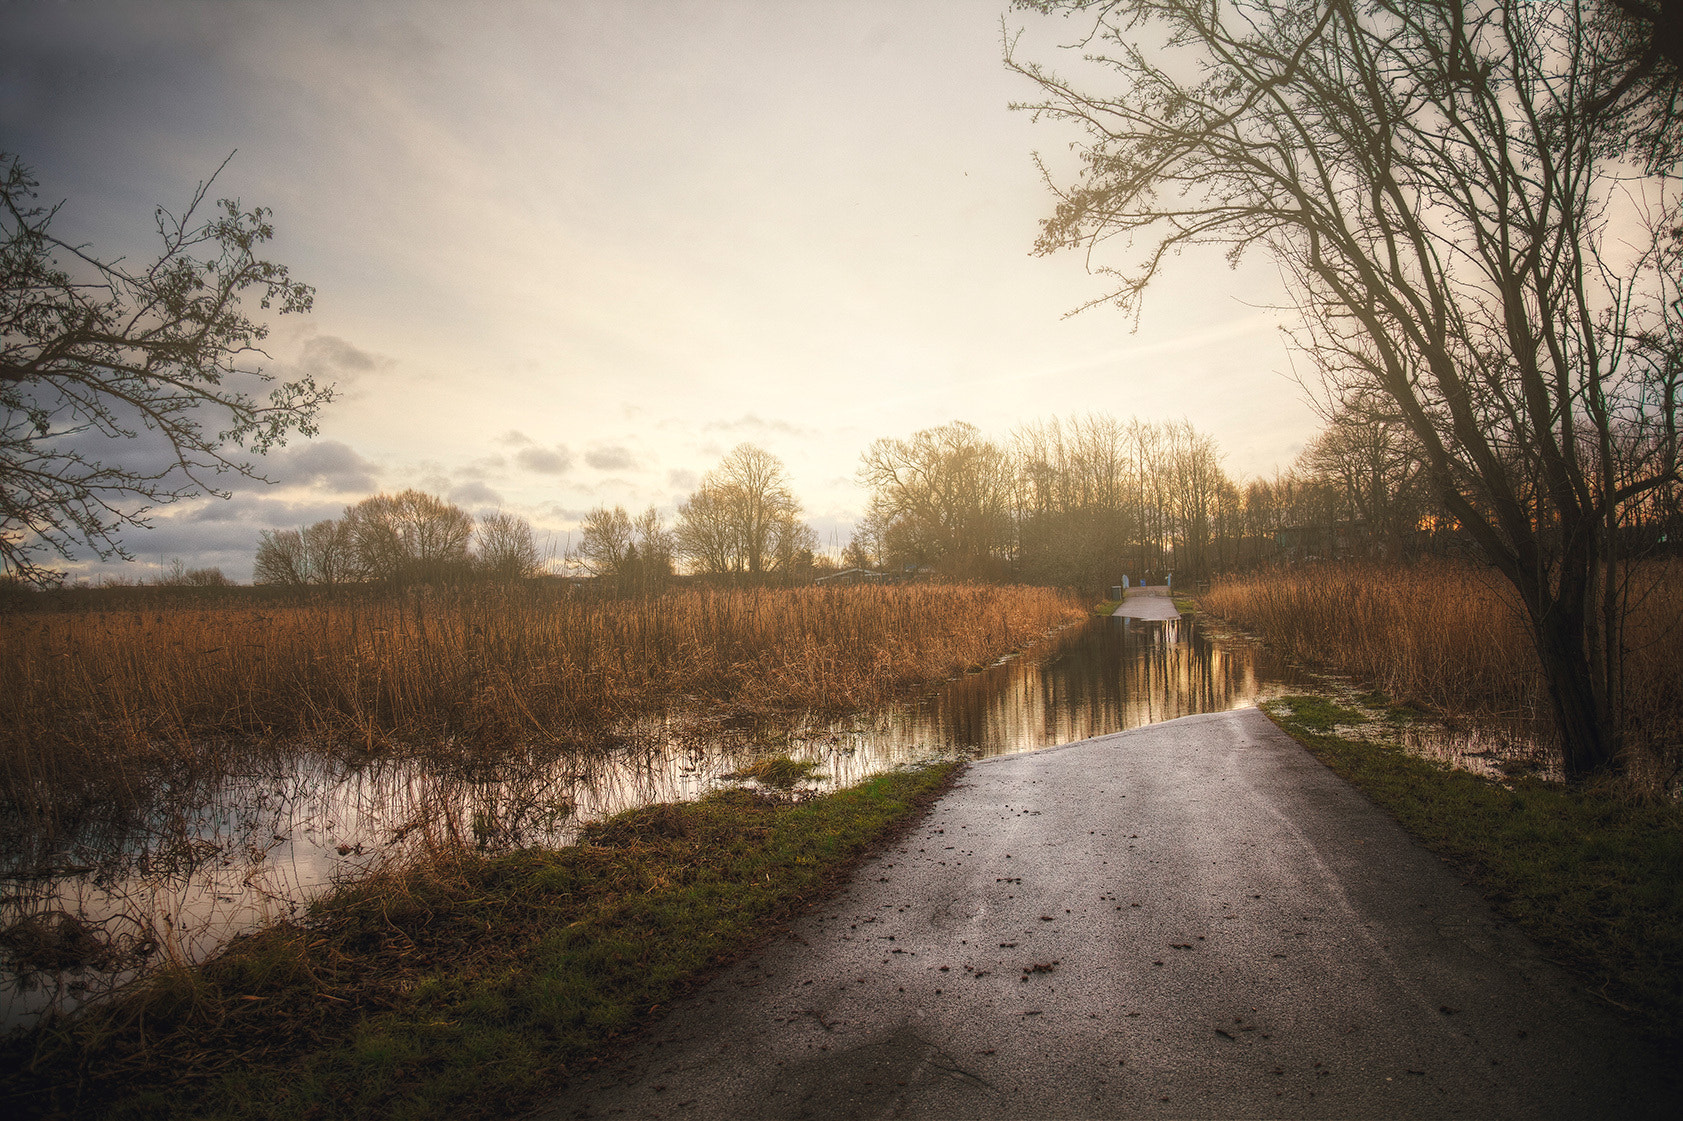 Photograph Flooded Road Home by Peter B. Christiansen on 500px